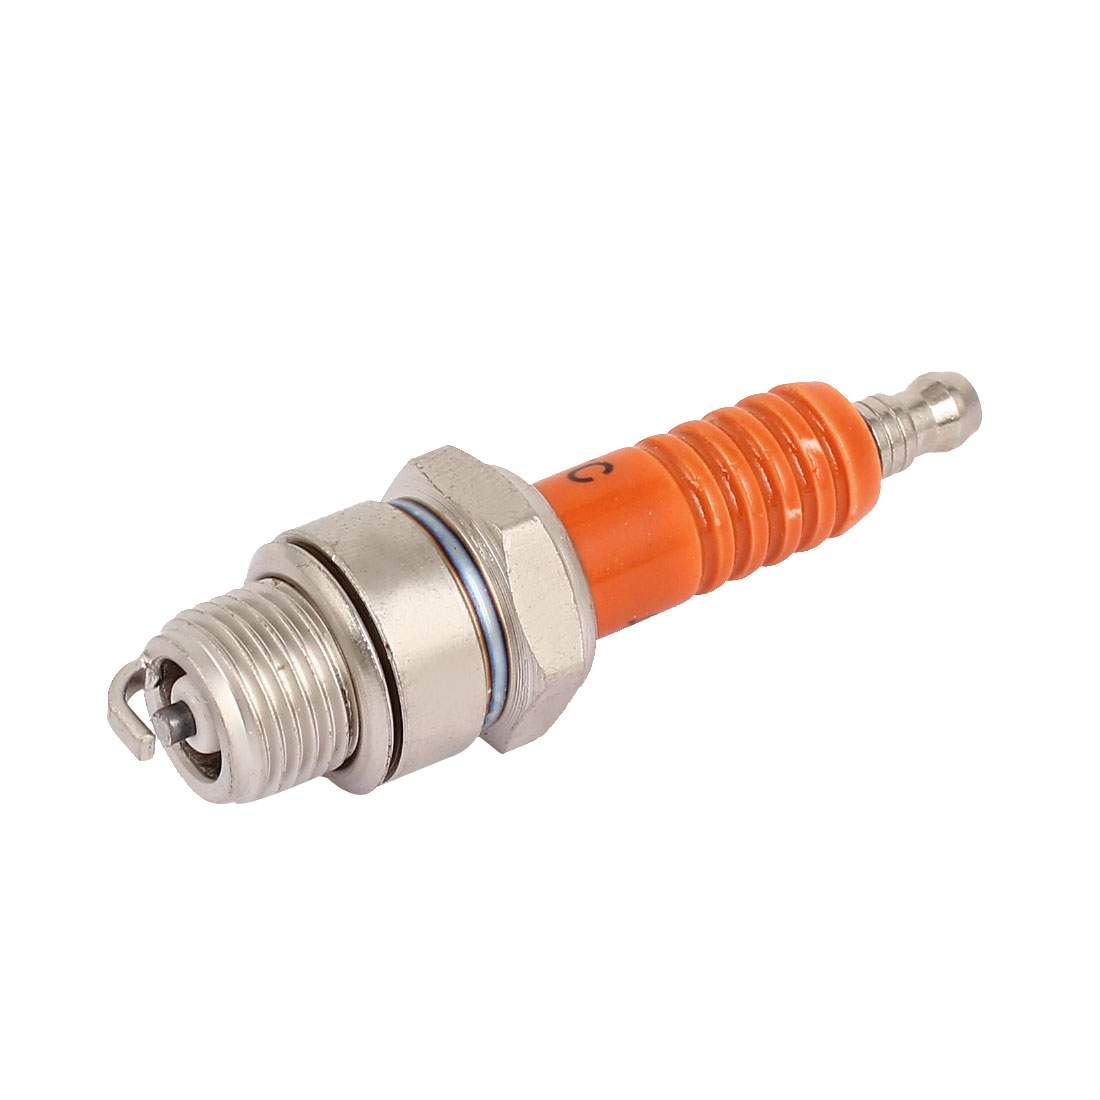 Torch Z4C Orangered Car Spark Plug For Bora